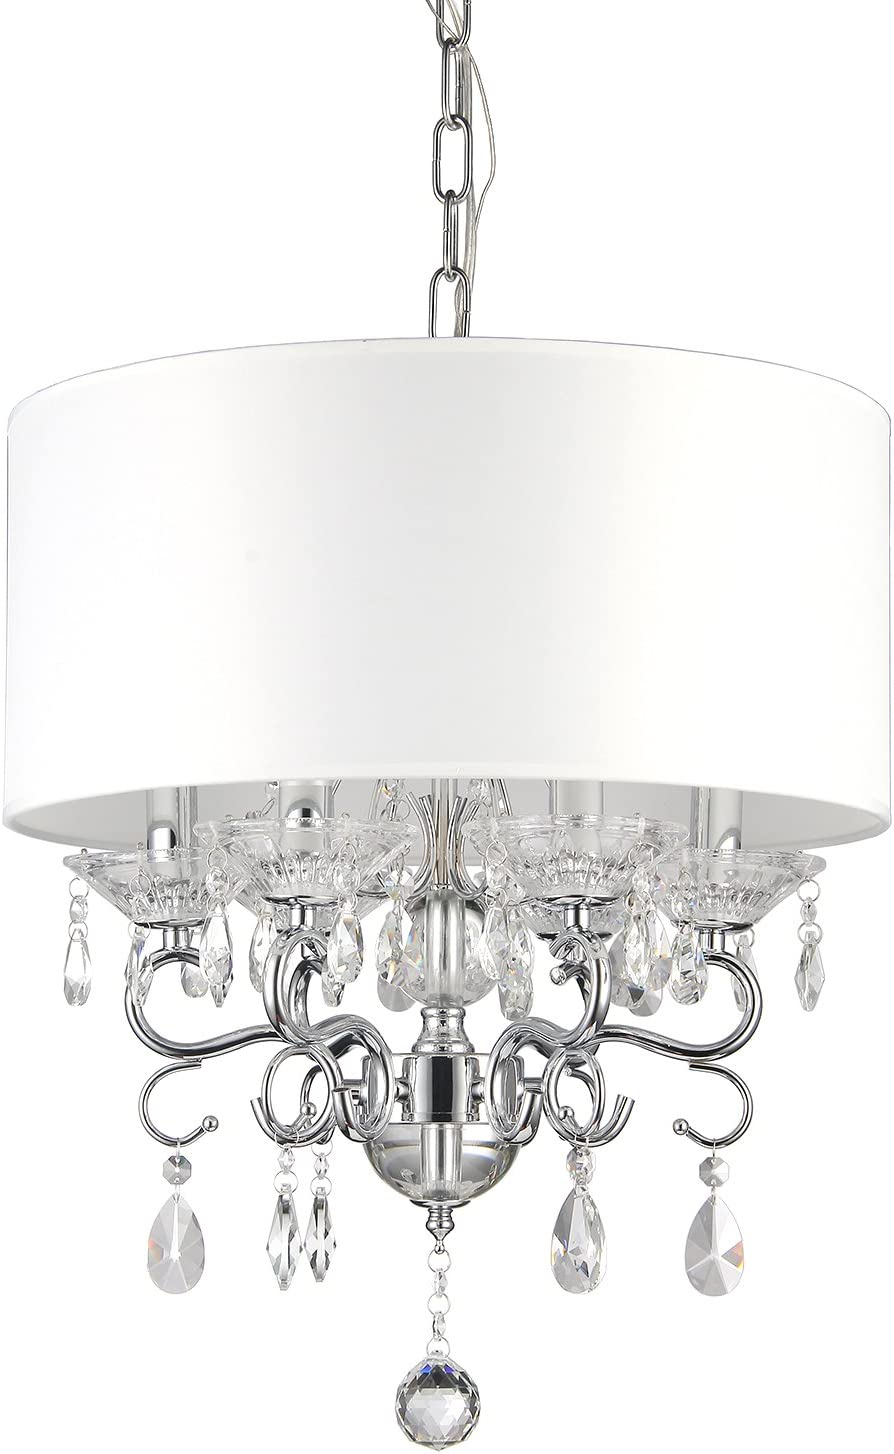 Edvivi 6-Light White Fabric Round Drum Shade Chrome Finish Crystal Chandelier Ceiling Fixture Glam Lighting